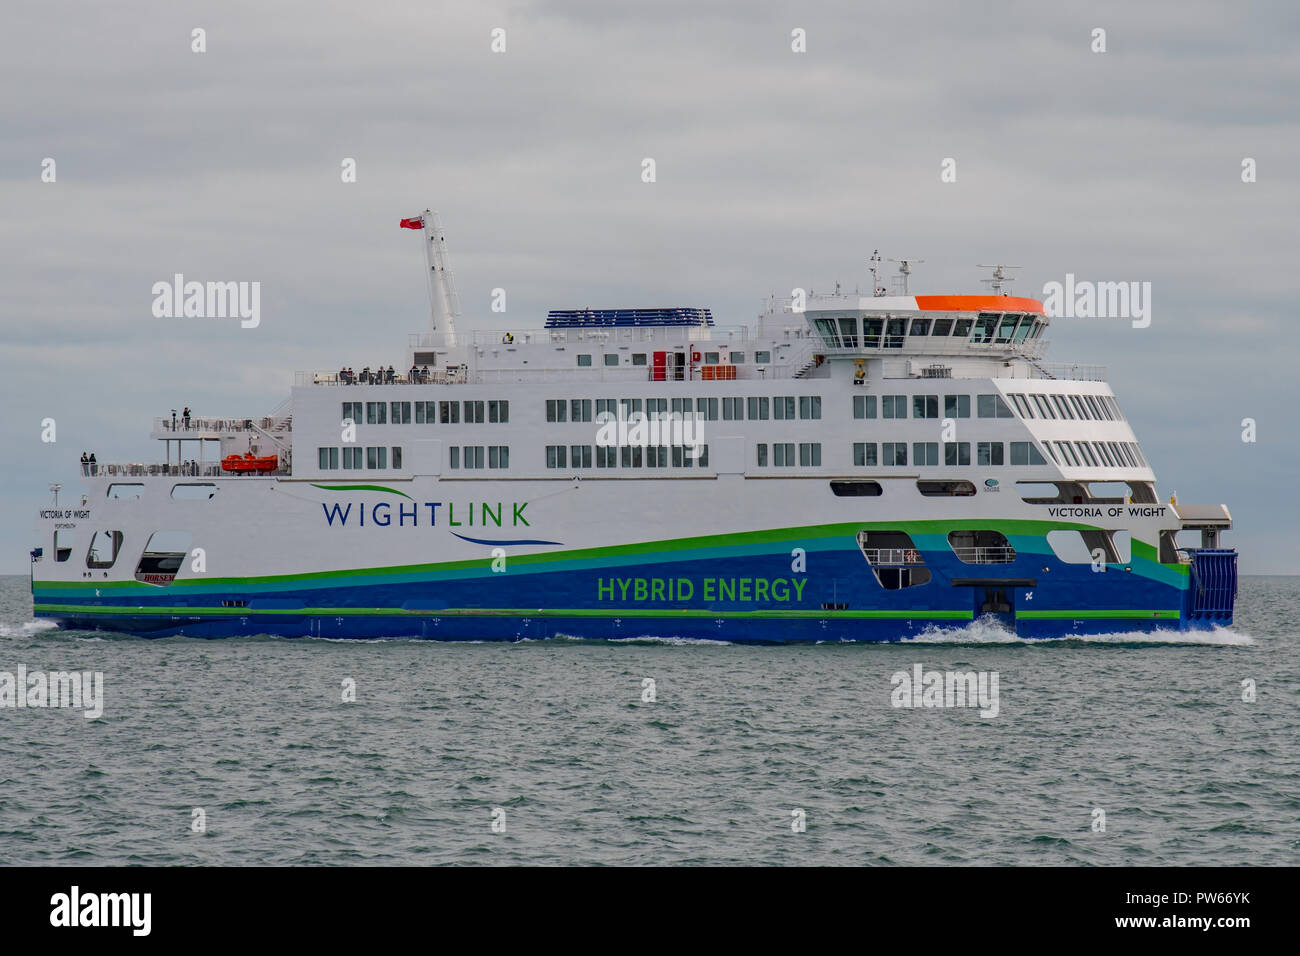 The new Wightlink car ferry 'Victoria of Wight' crossing The Solent en route from Portsmouth to the Isle of Wight on the 8th October 2018. Stock Photo